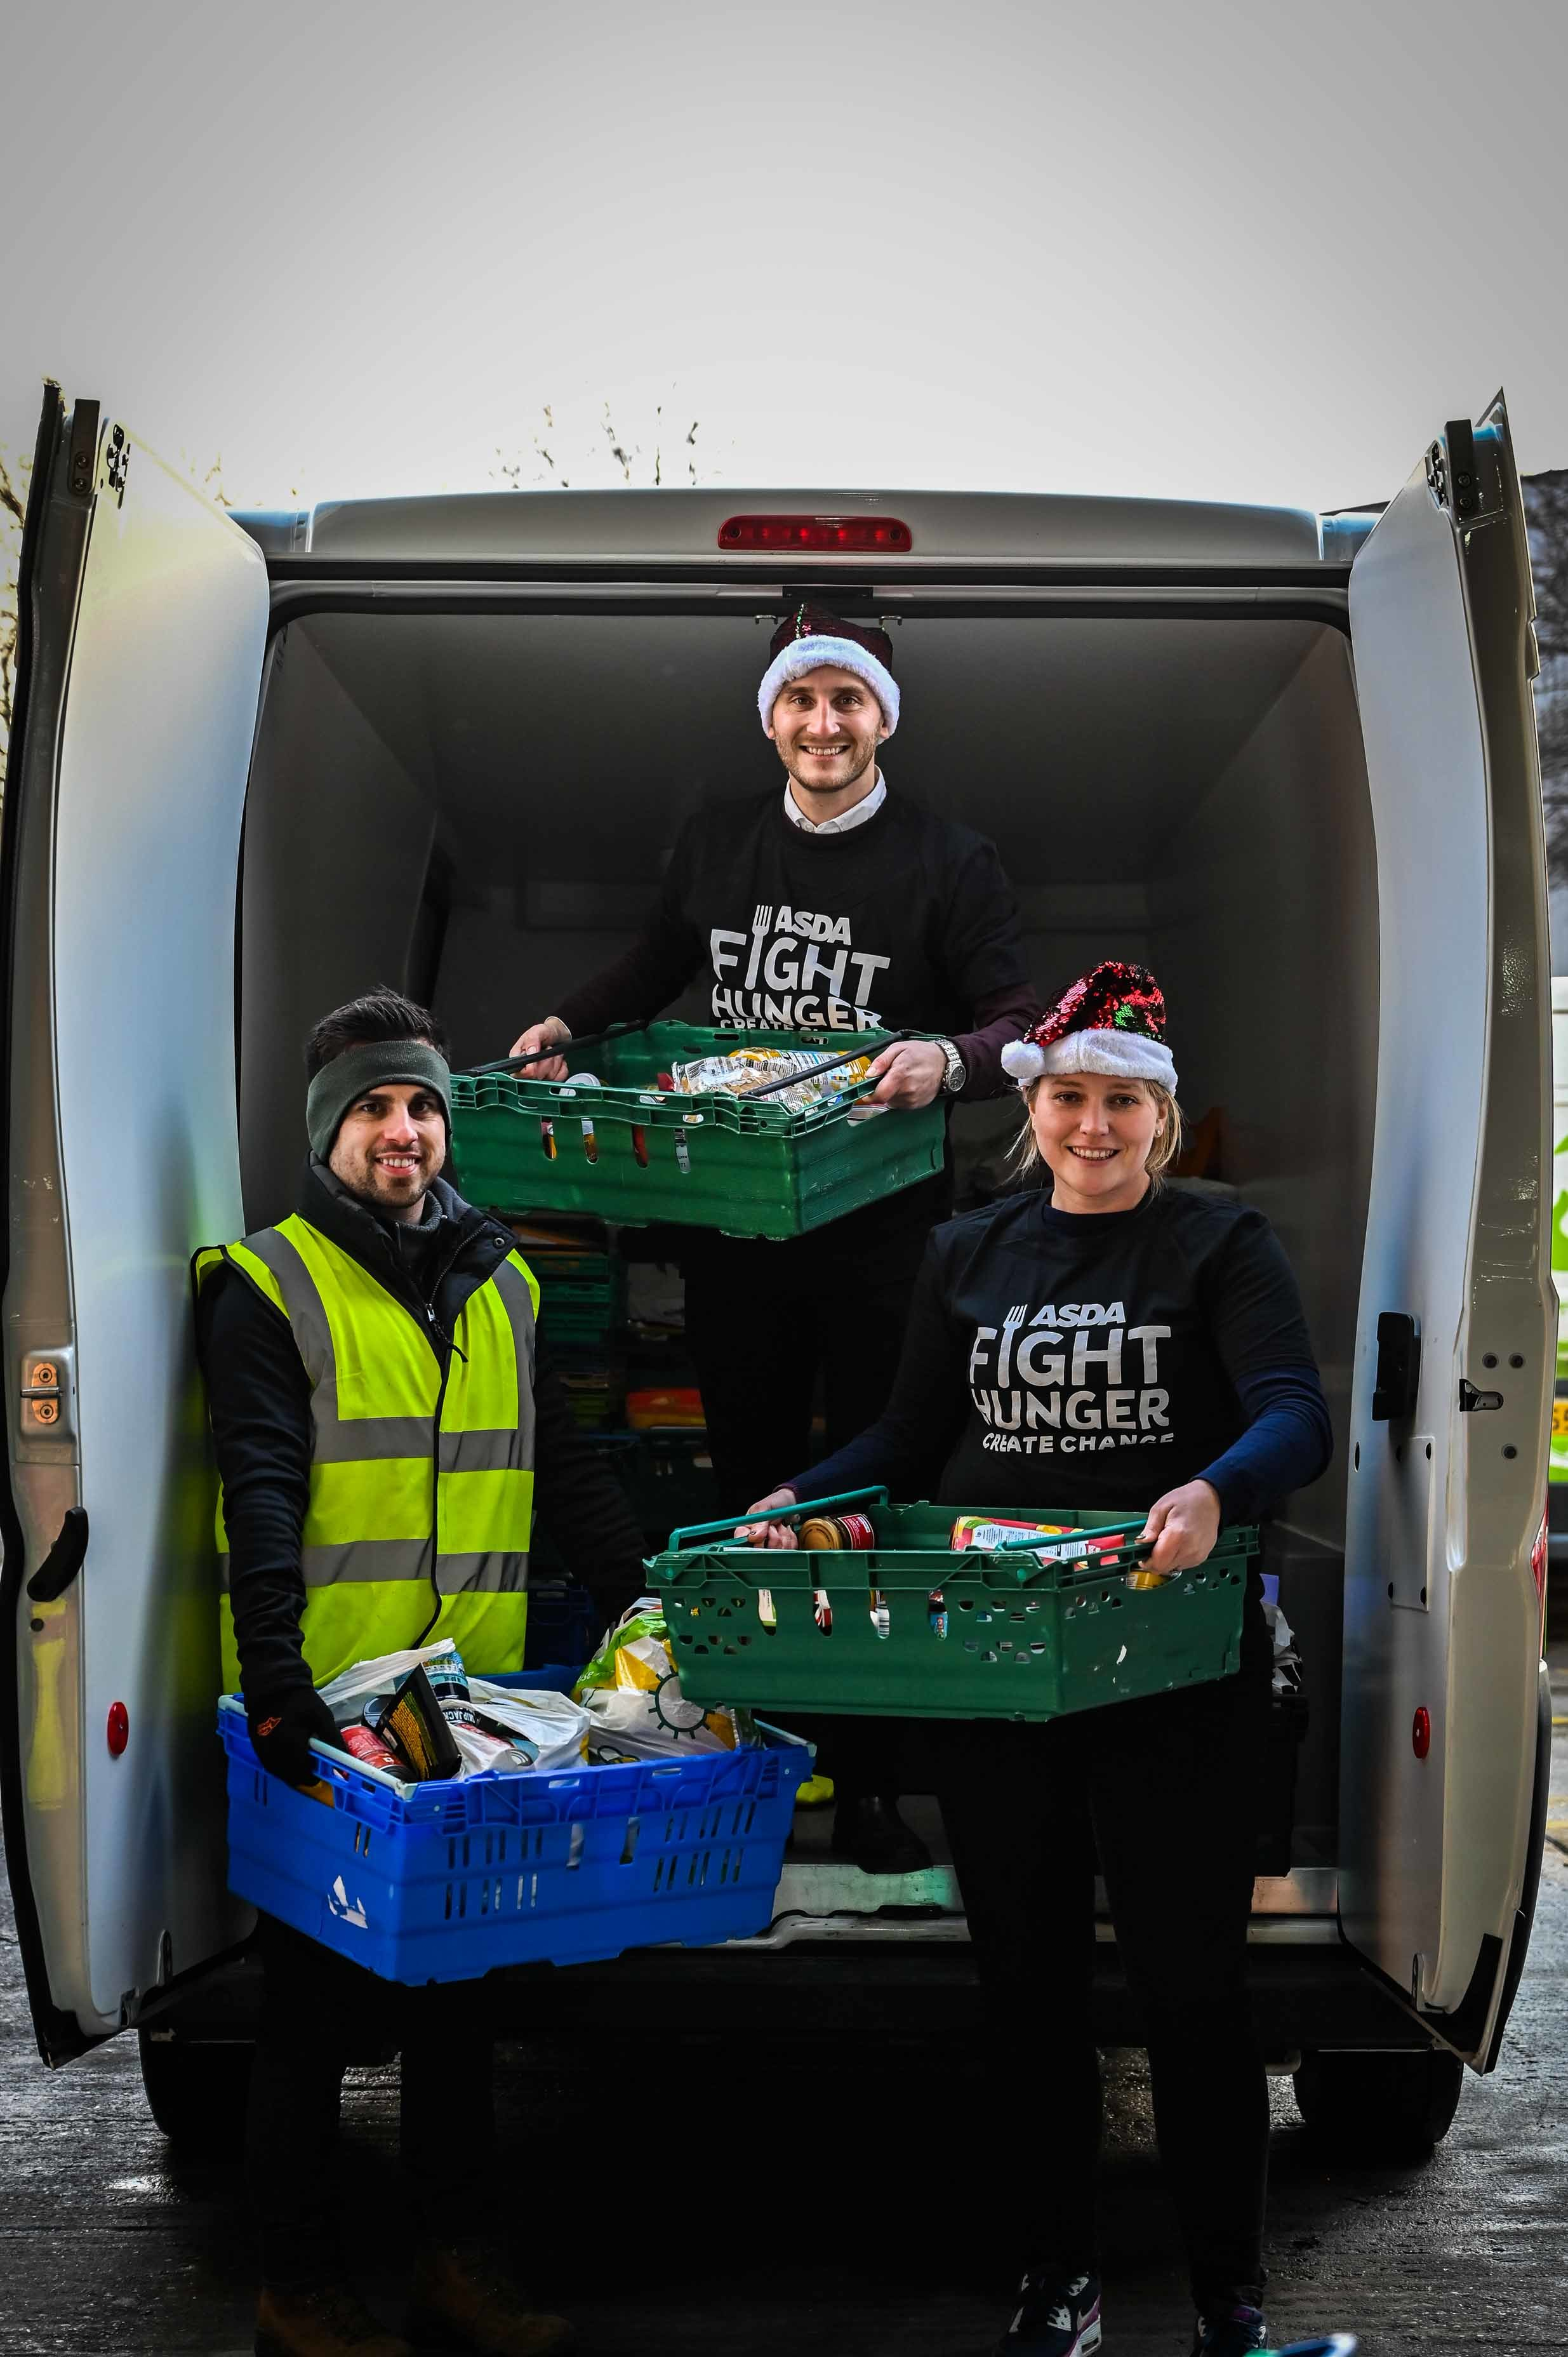 Asda arranged a celebration event to thank FareShare and Trussell Trust for helping people in need this Christmas